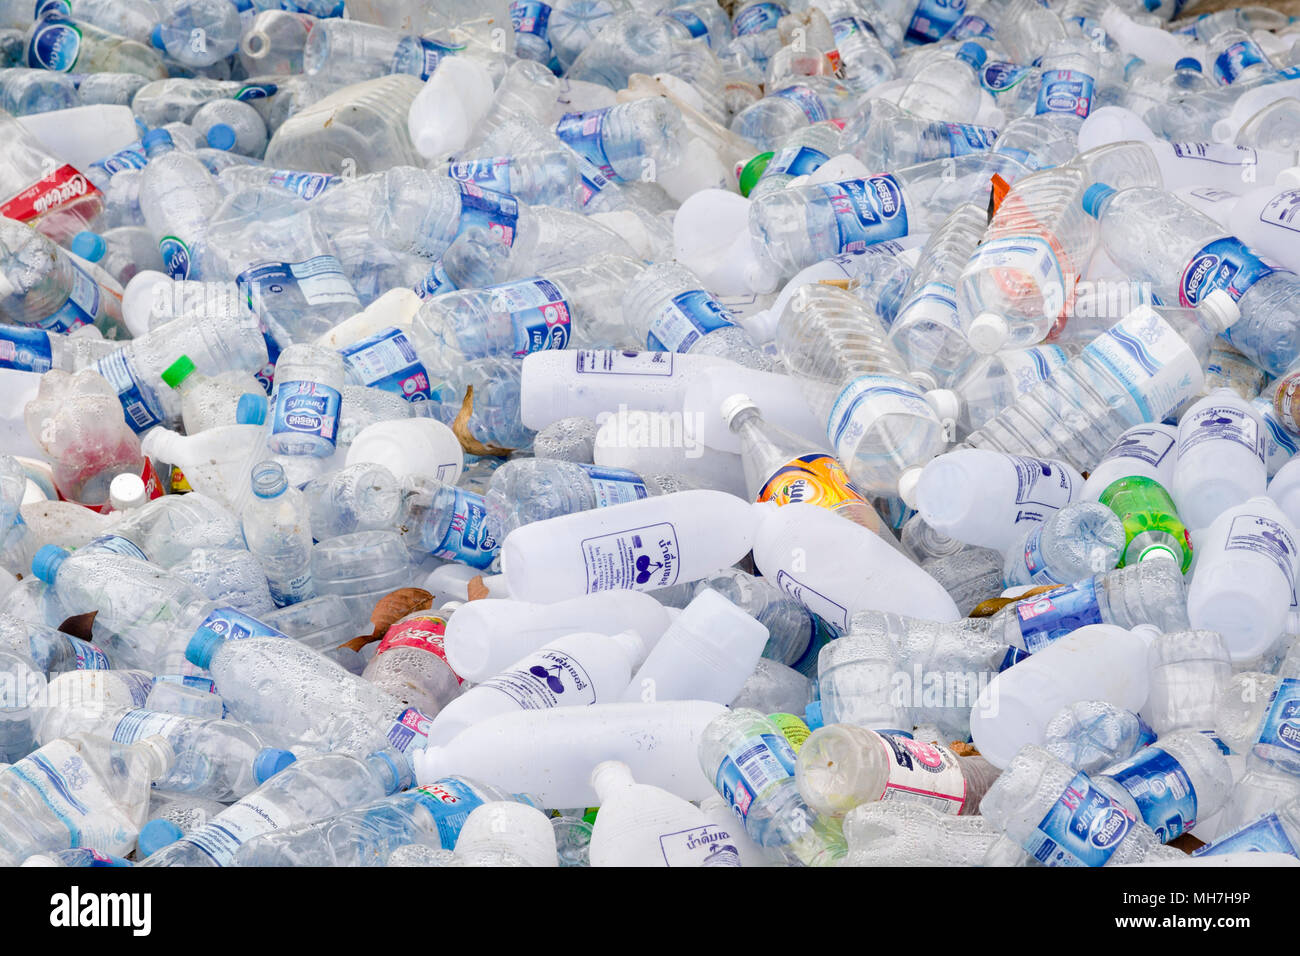 Plastic bottles for recycling, Thailand - Stock Image